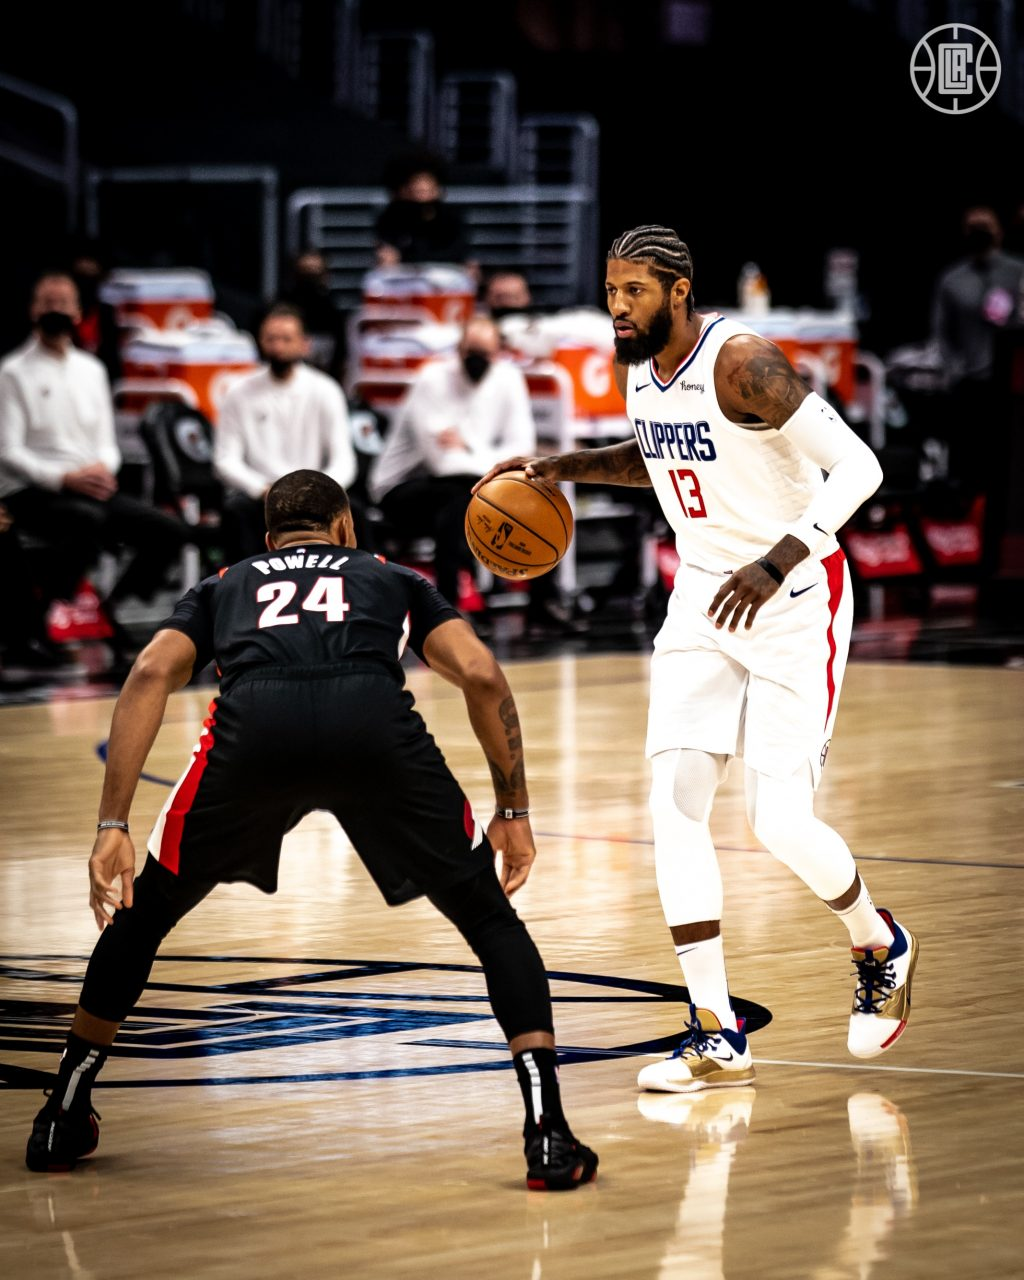 Courtside with Clippers – Week 14